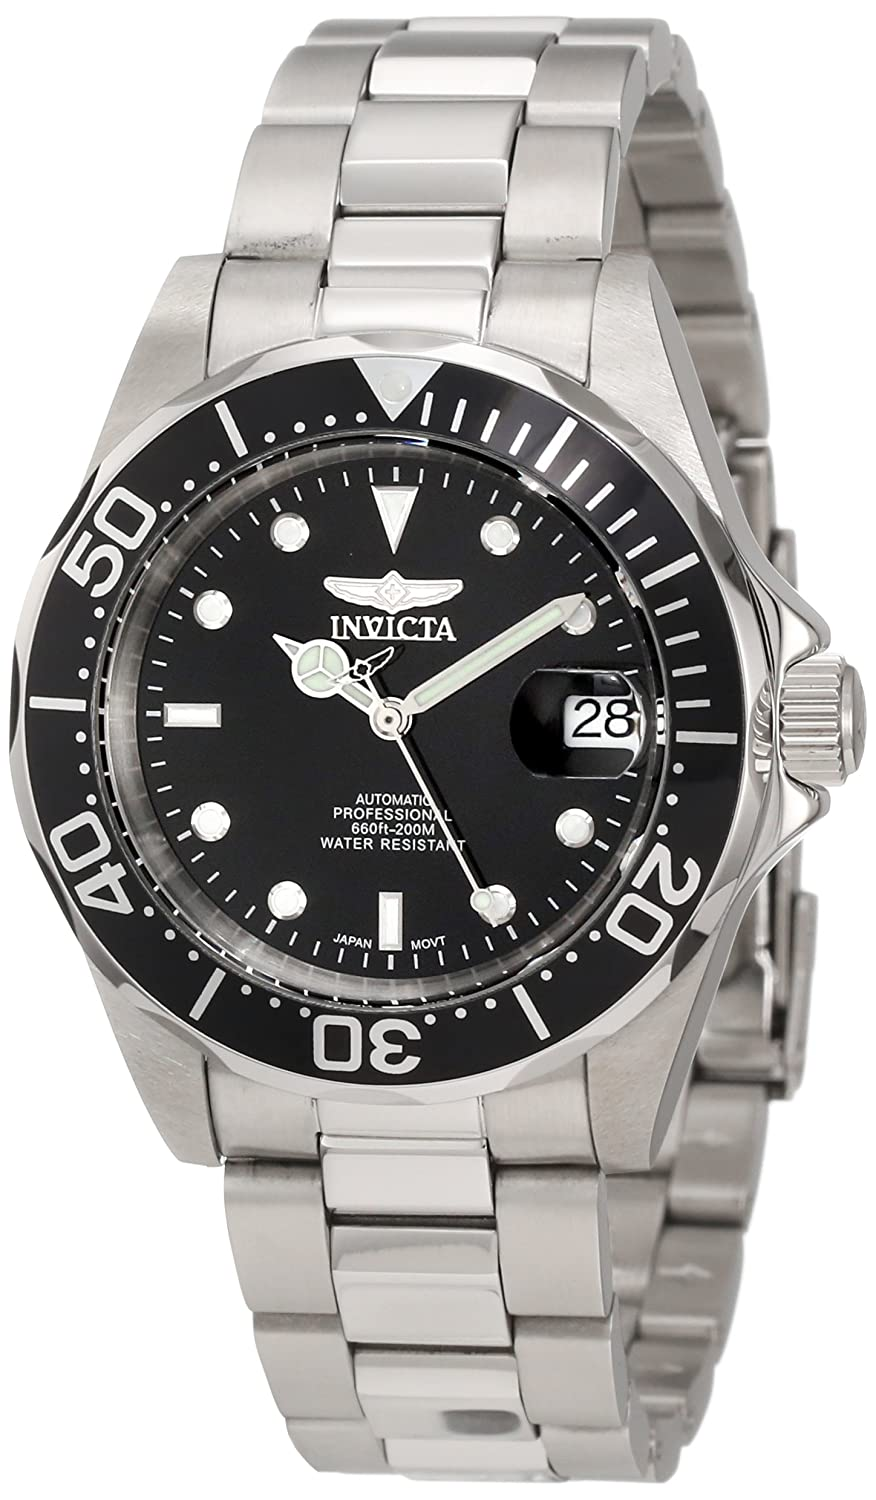 Popular Watch Reviews: # Invicta-8926 Men Watch Review